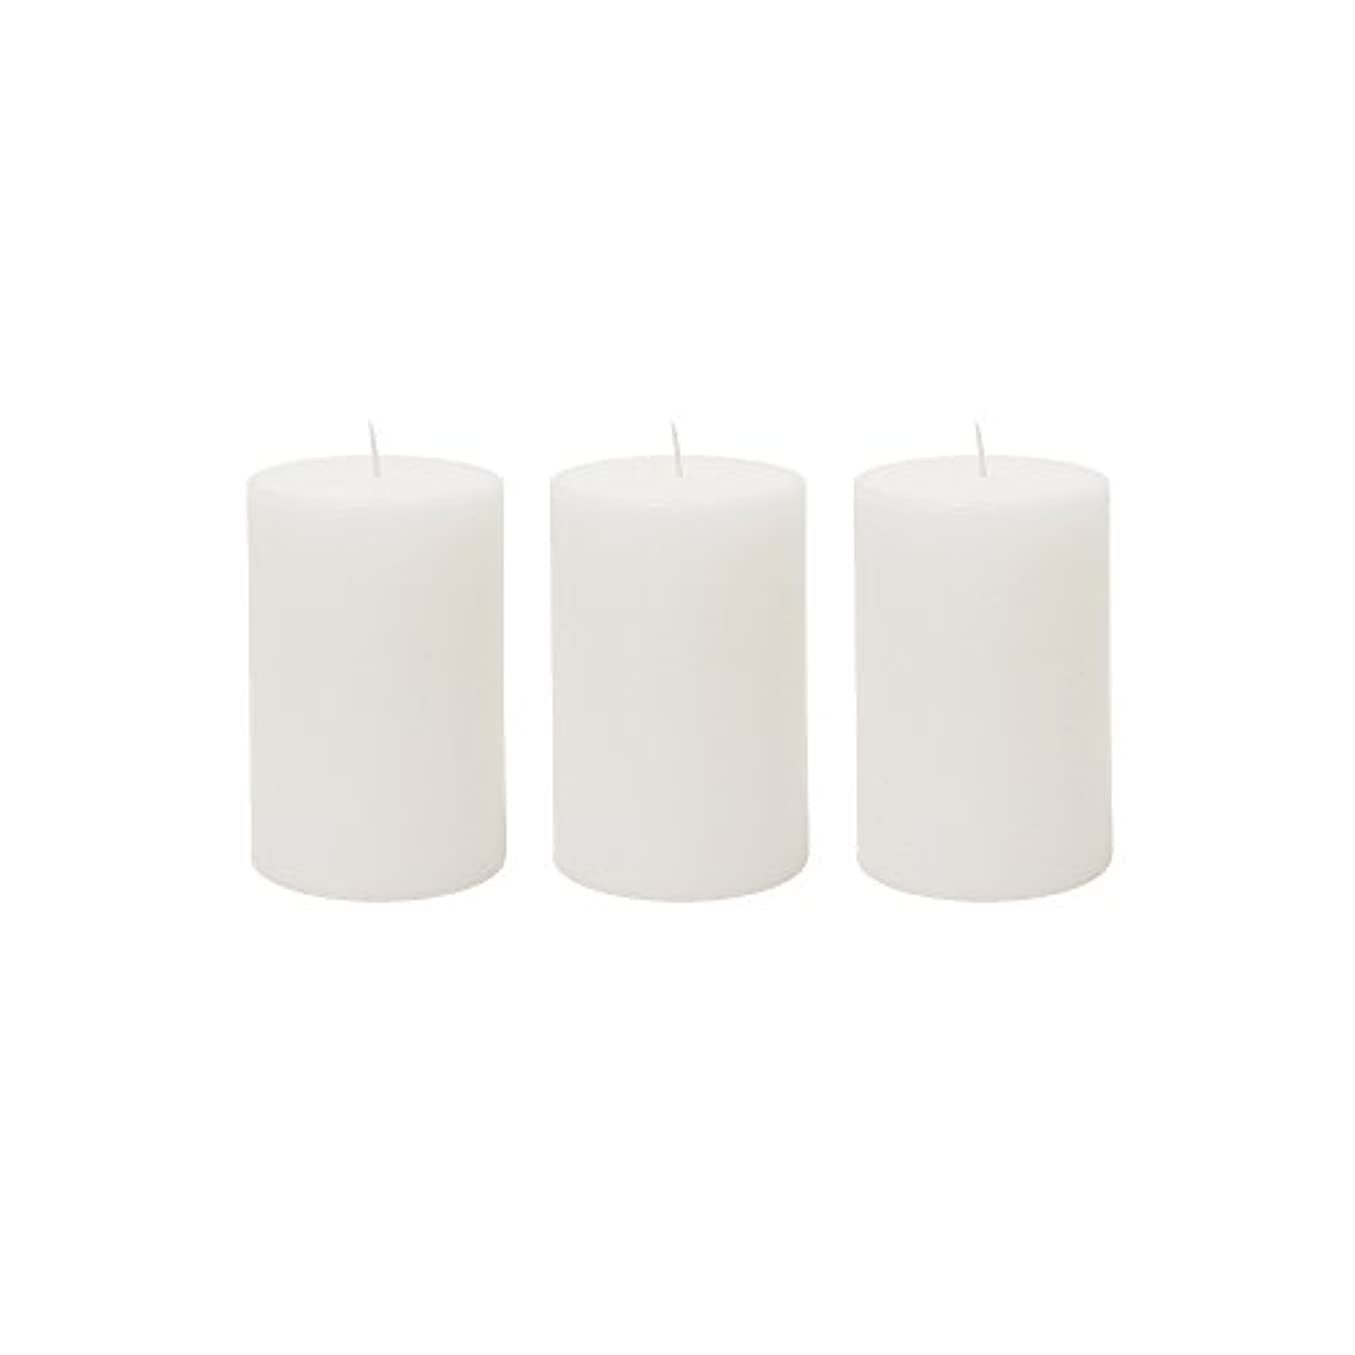 鉄道評決尊敬する(3, 5.1cm x 7.6cm Round) - Mega Candles 3 pcs Unscented White Round Pillar Candle Hand Poured Premium Wax Candles...